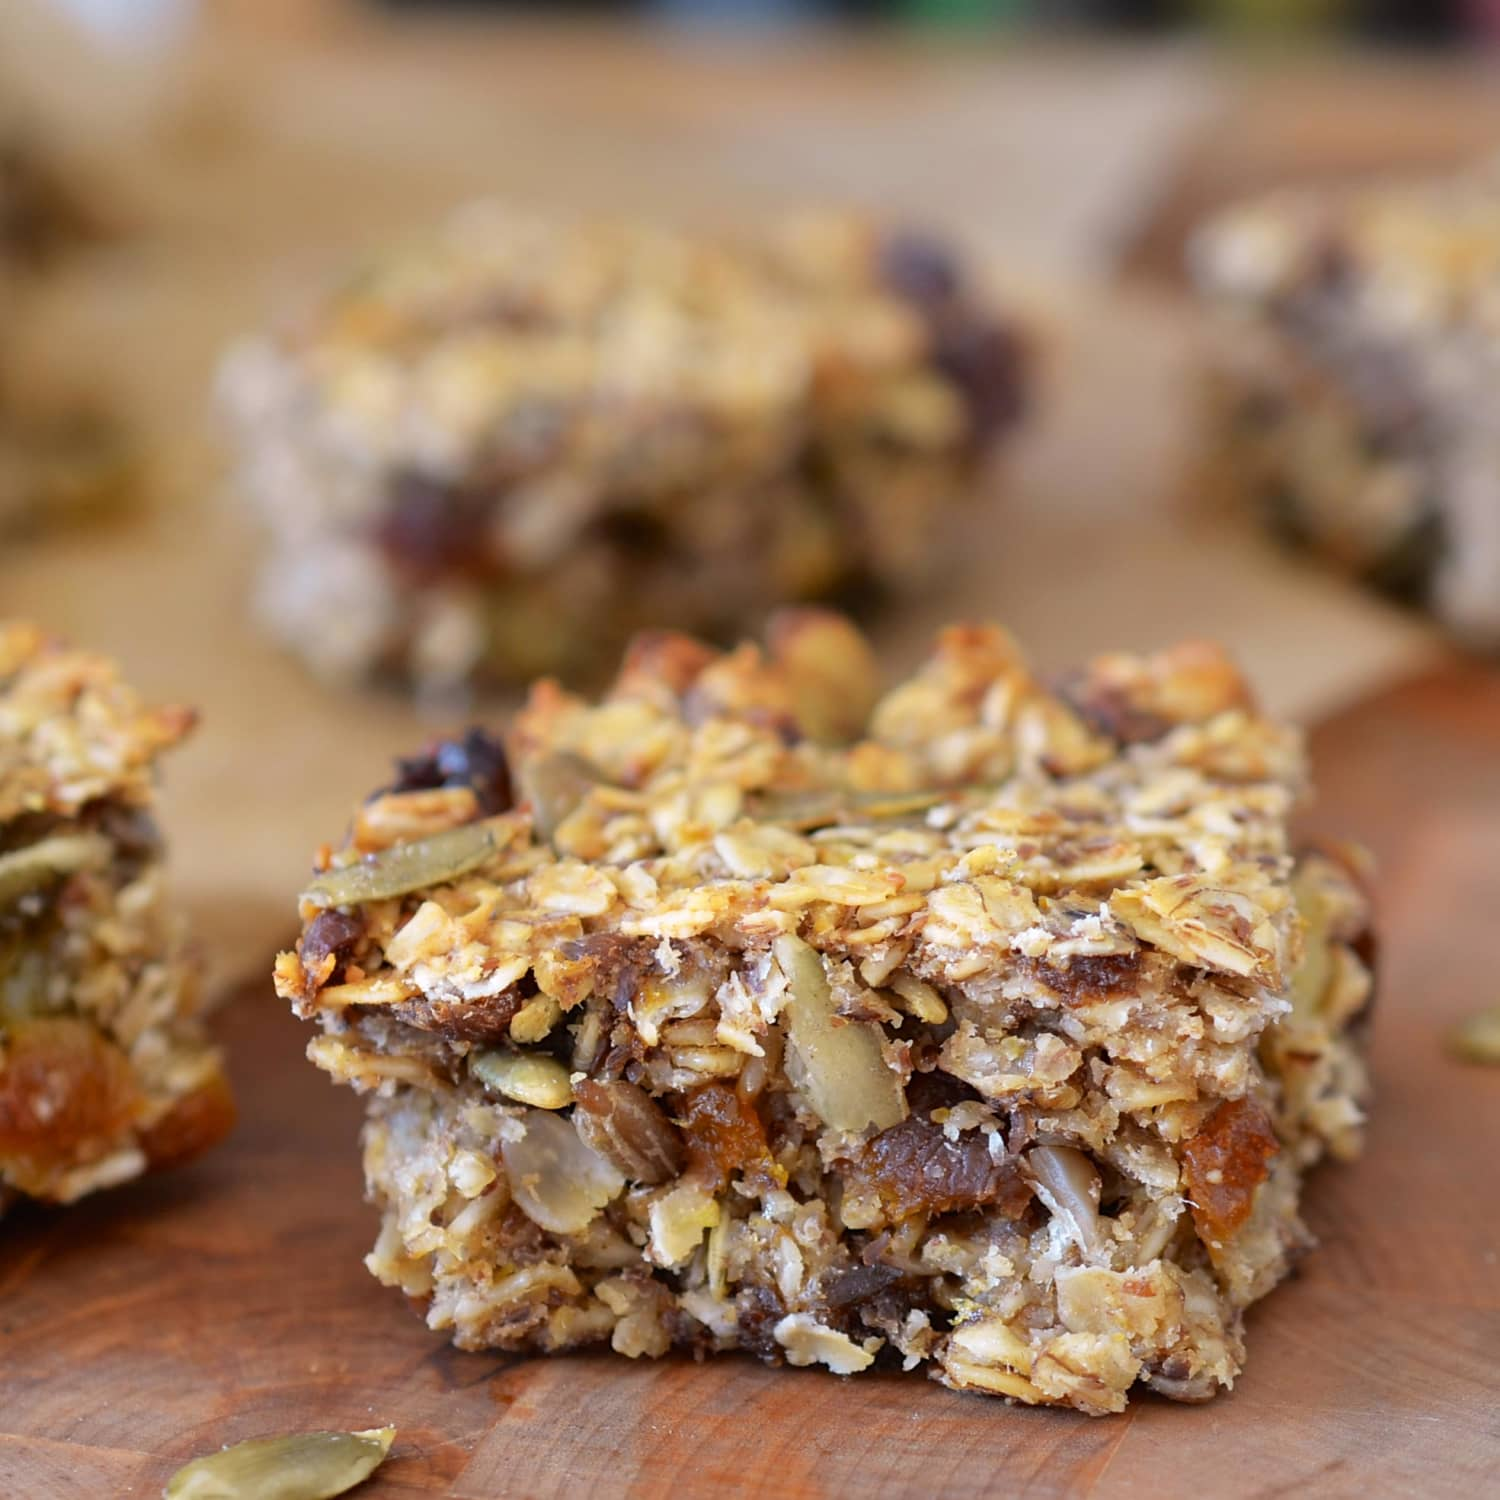 Seed Kitchen And Bar: Recipe: Cakey, Oaty Energy Bars Packed With Fruits & Seeds